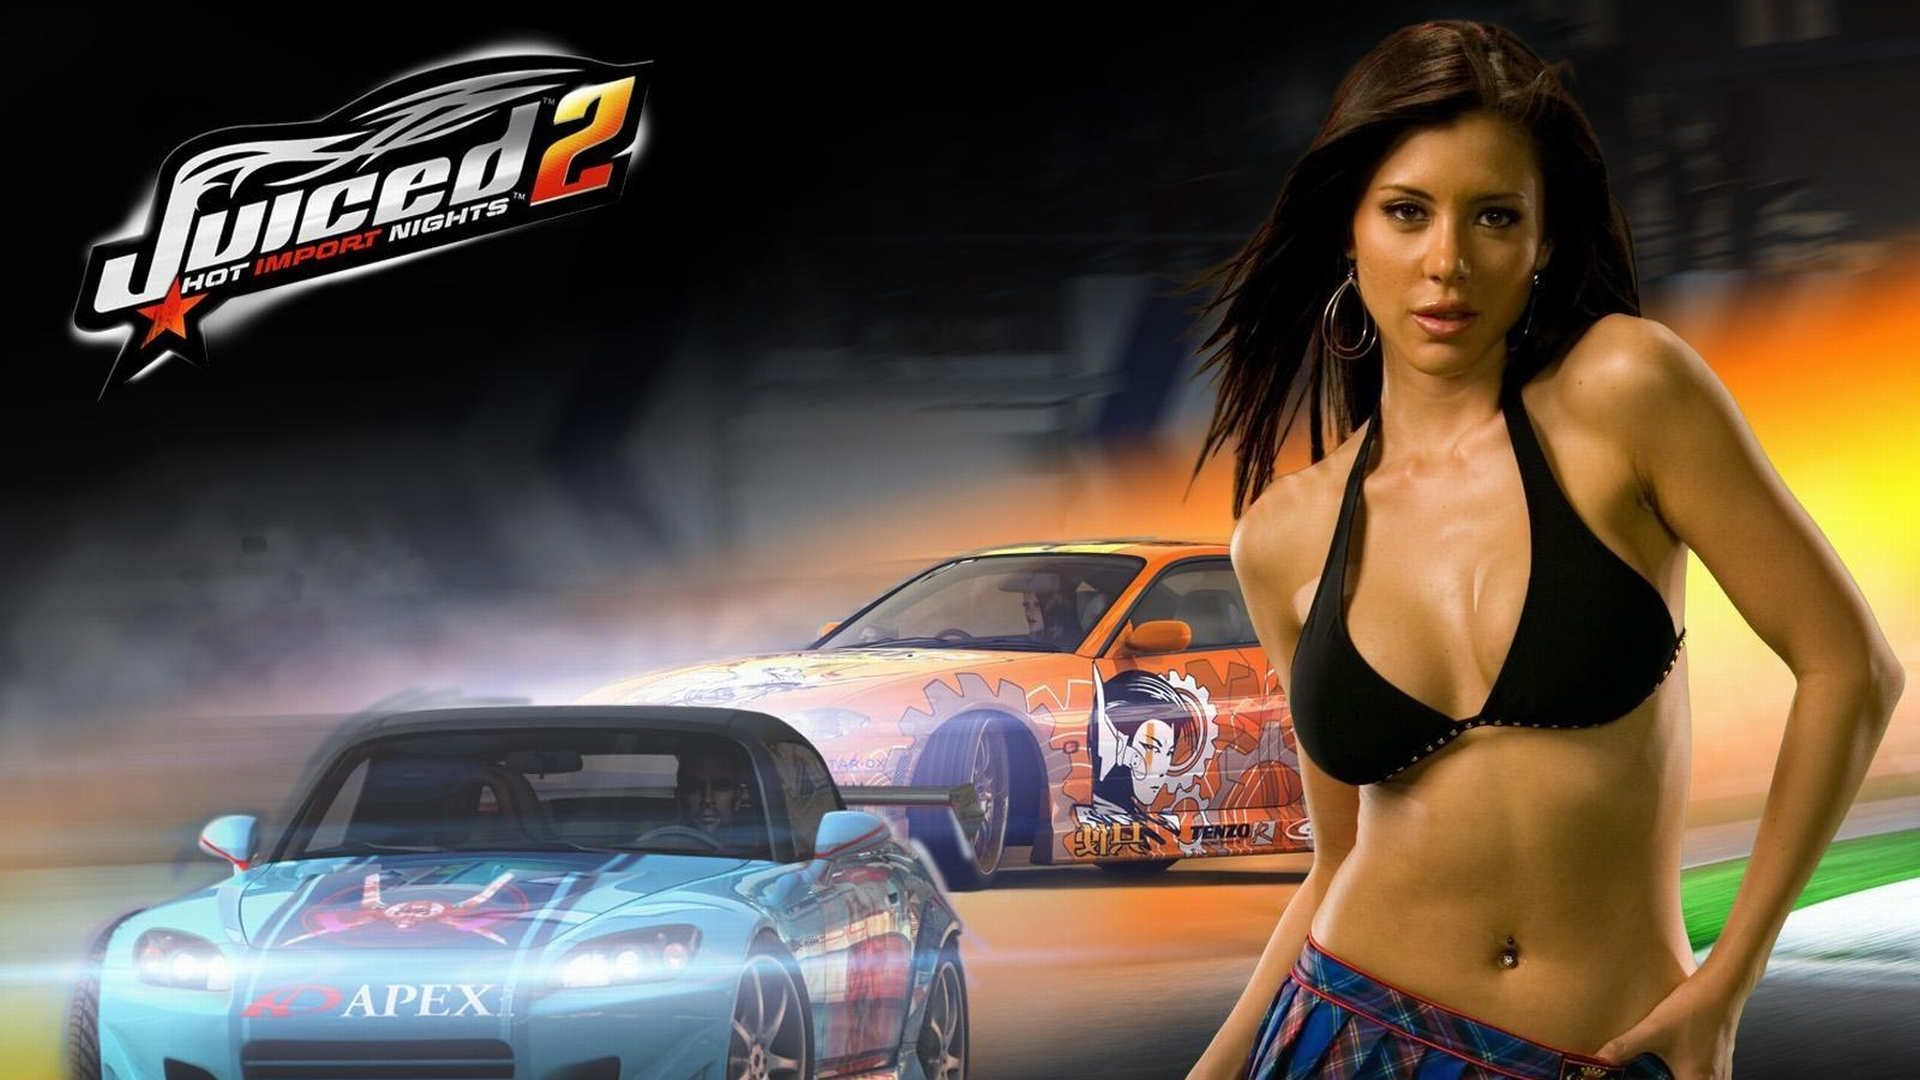 Hd Nfs Cars Wallpapers 2 Juiced Hd Wallpapers Background Images Wallpaper Abyss